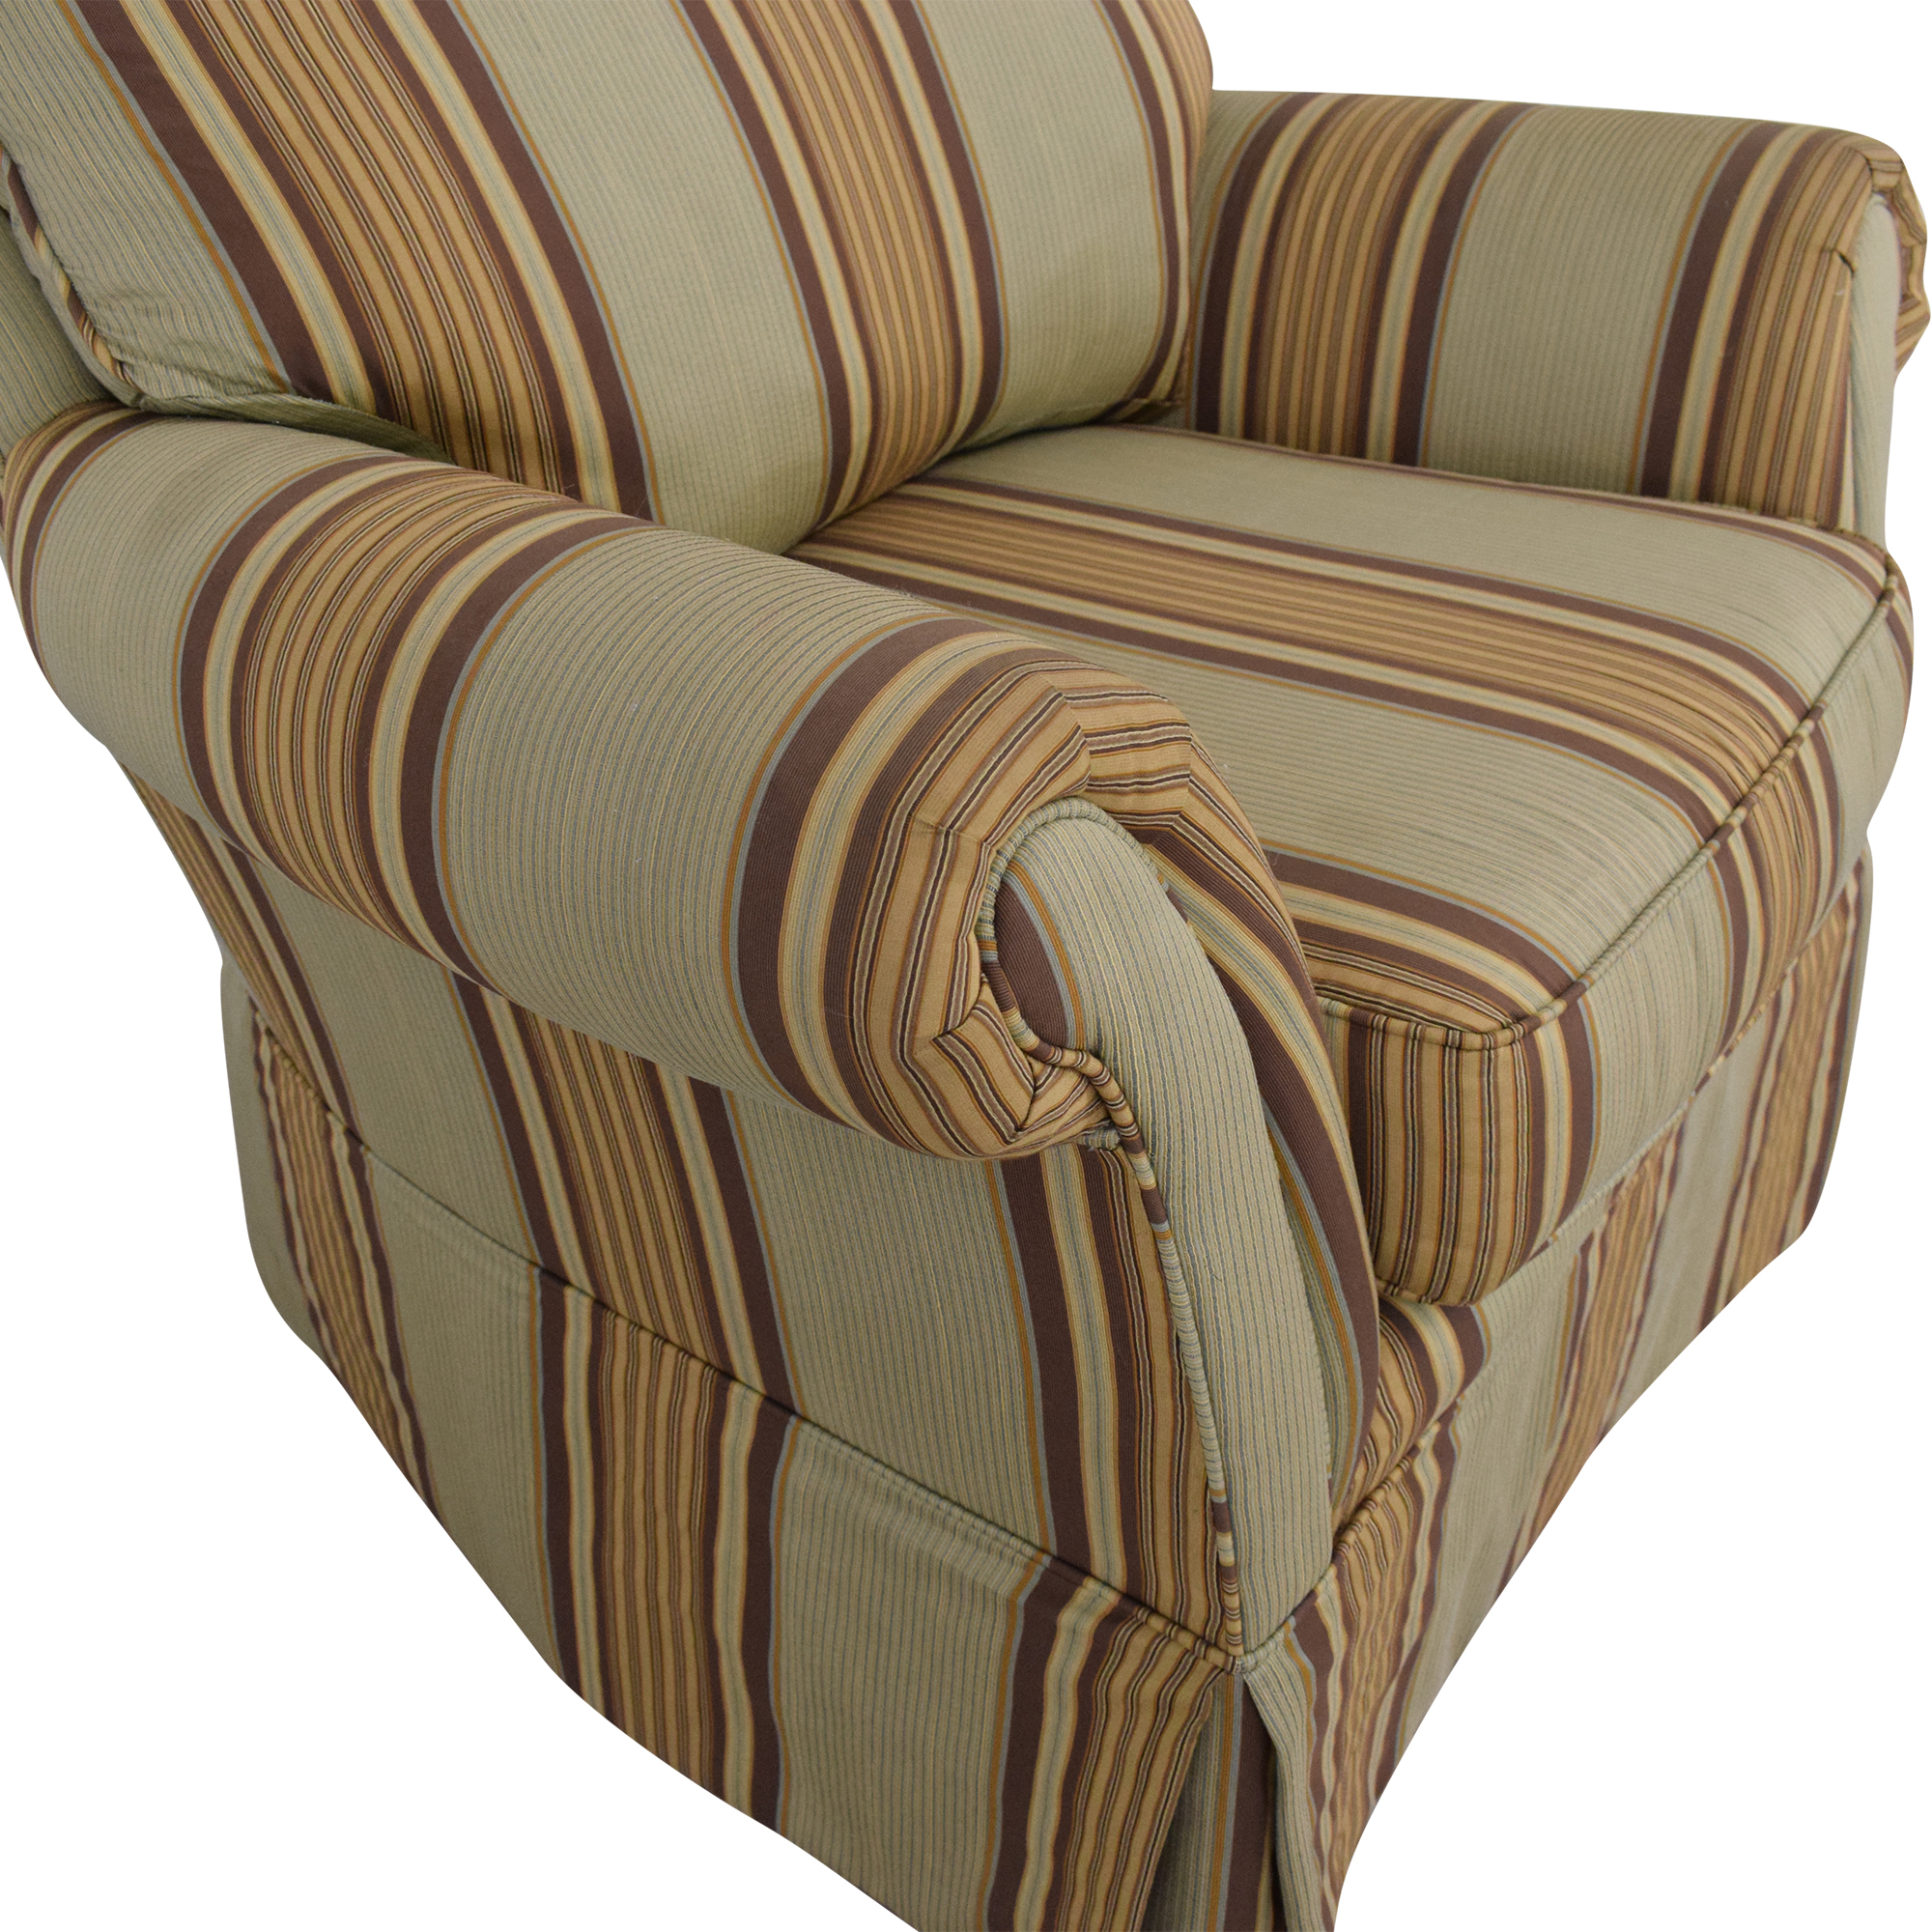 Harden Harden Roll Arm Lounge Chair used